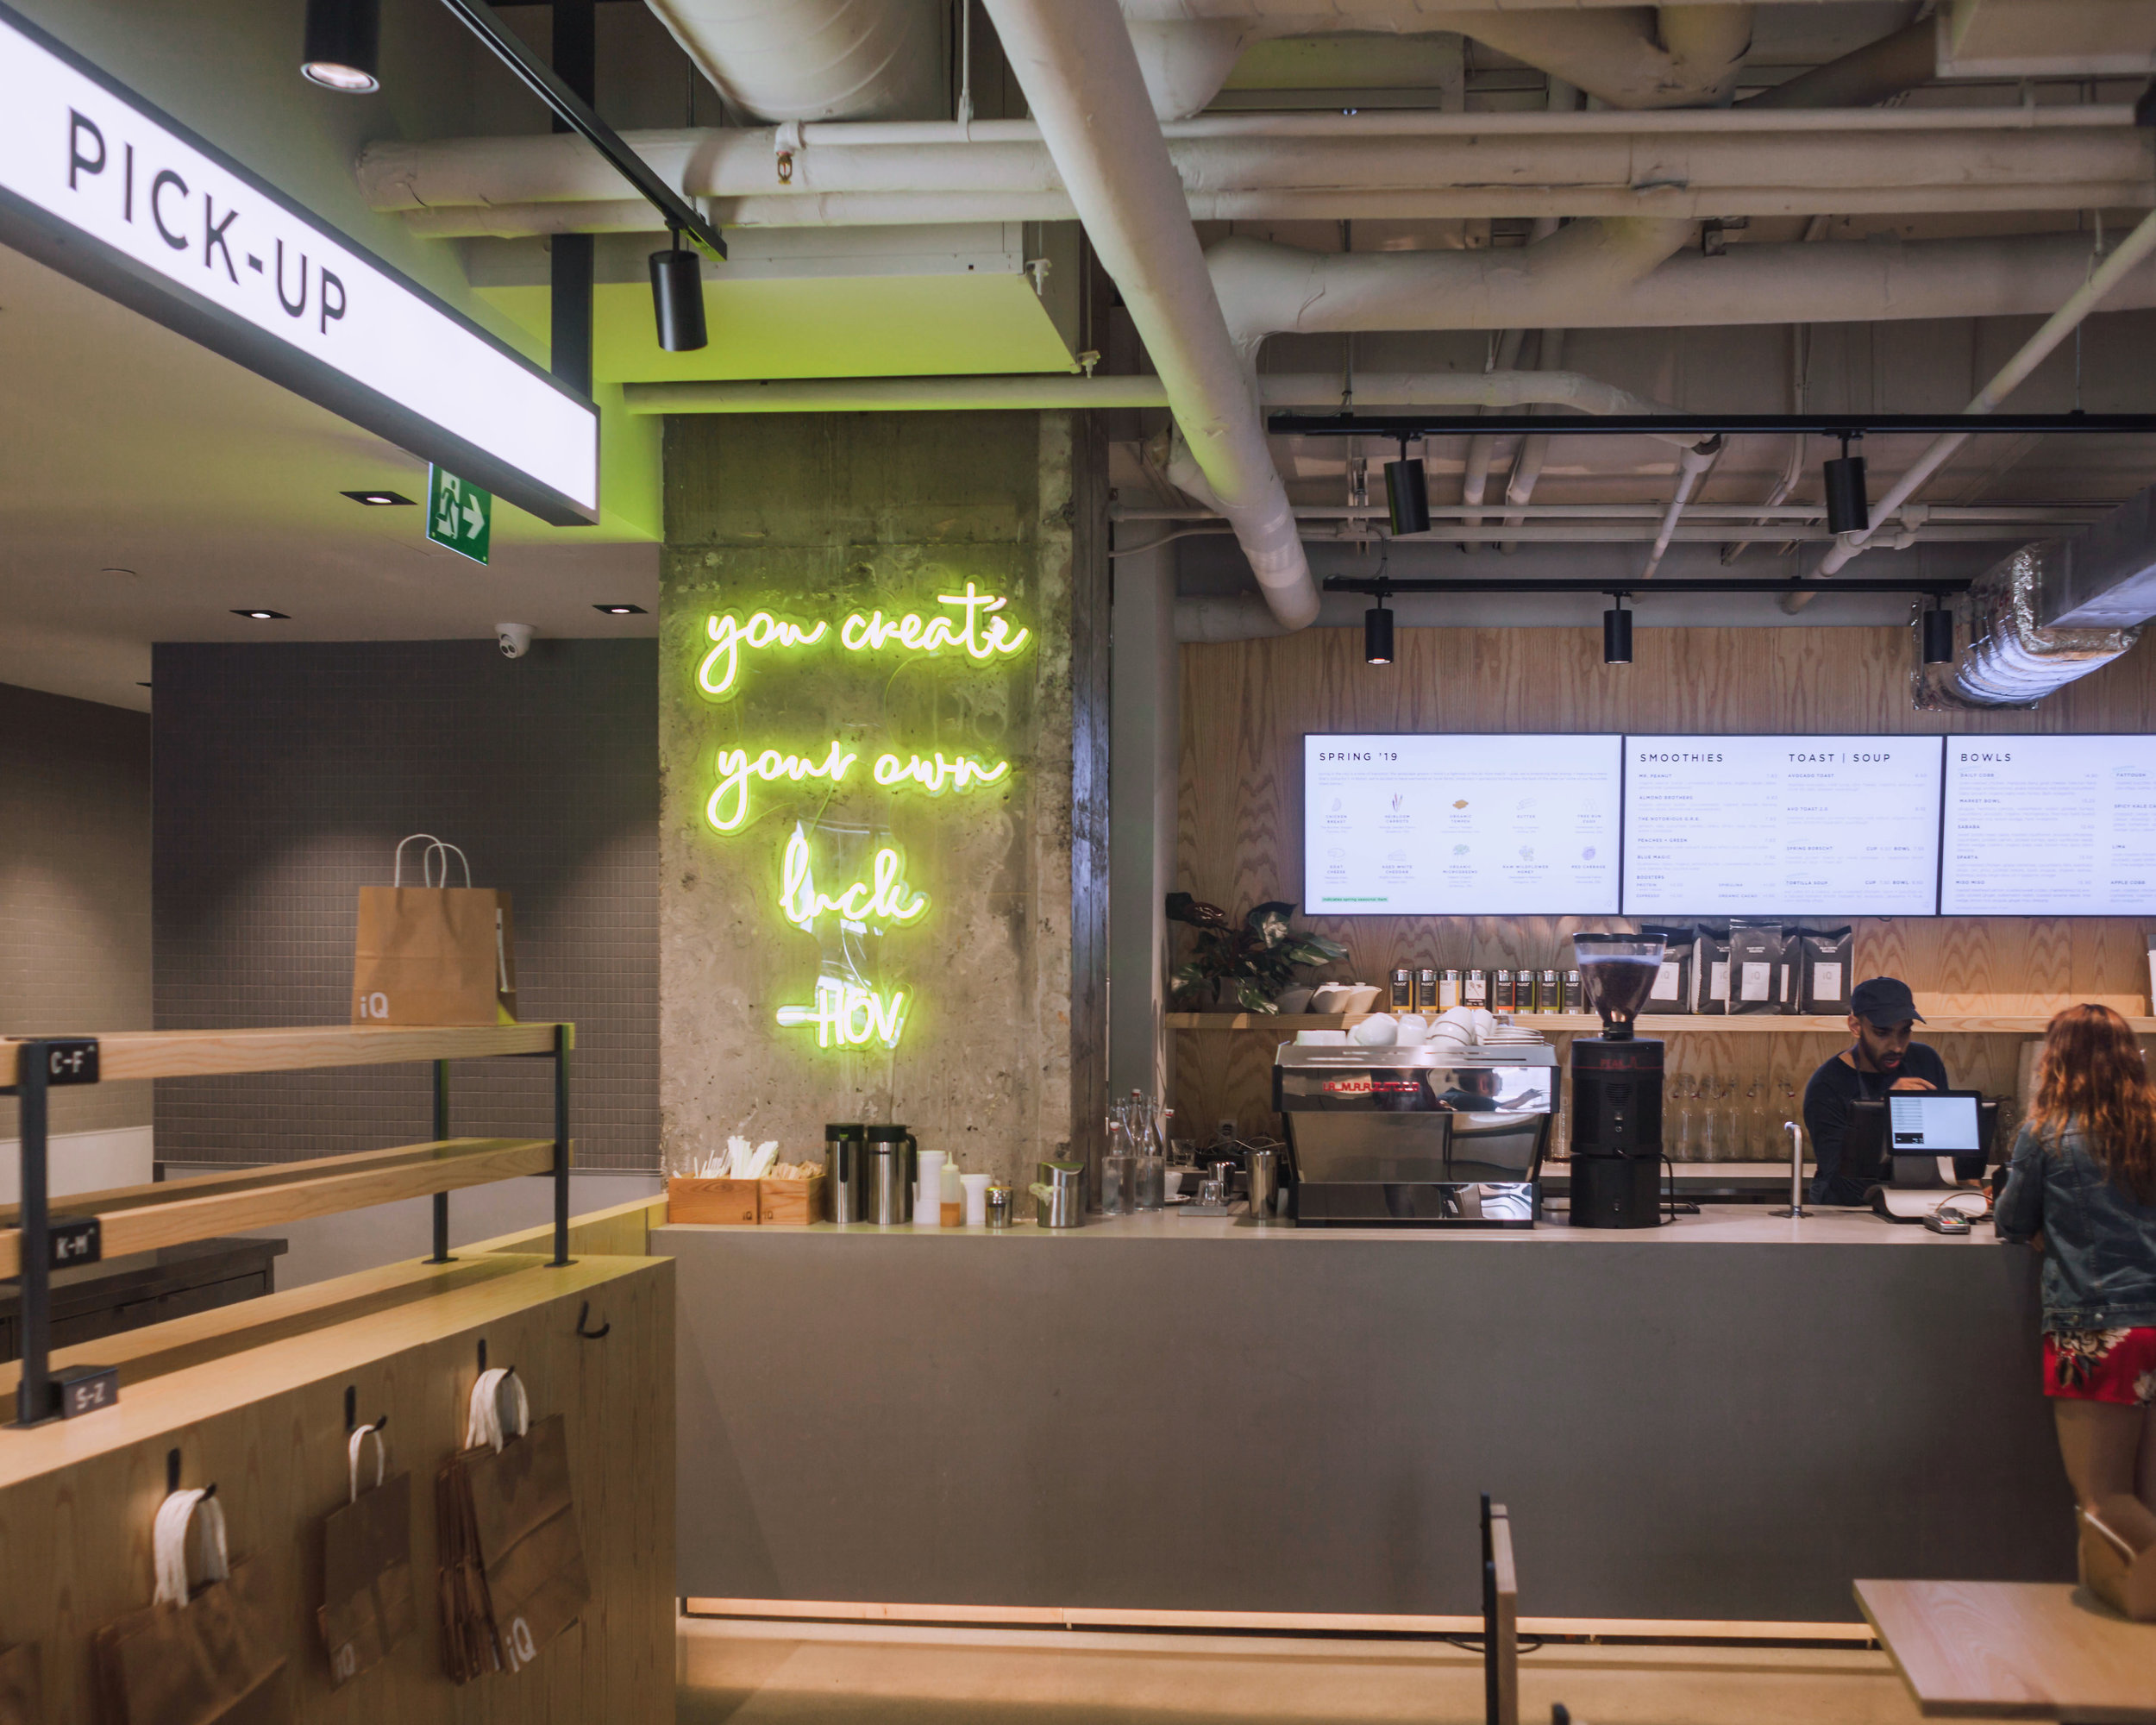 The interior of iQ's newest St. Clair location is clean, minimal, and filled with inspiring & motivational messaging to make your day a little brighter.